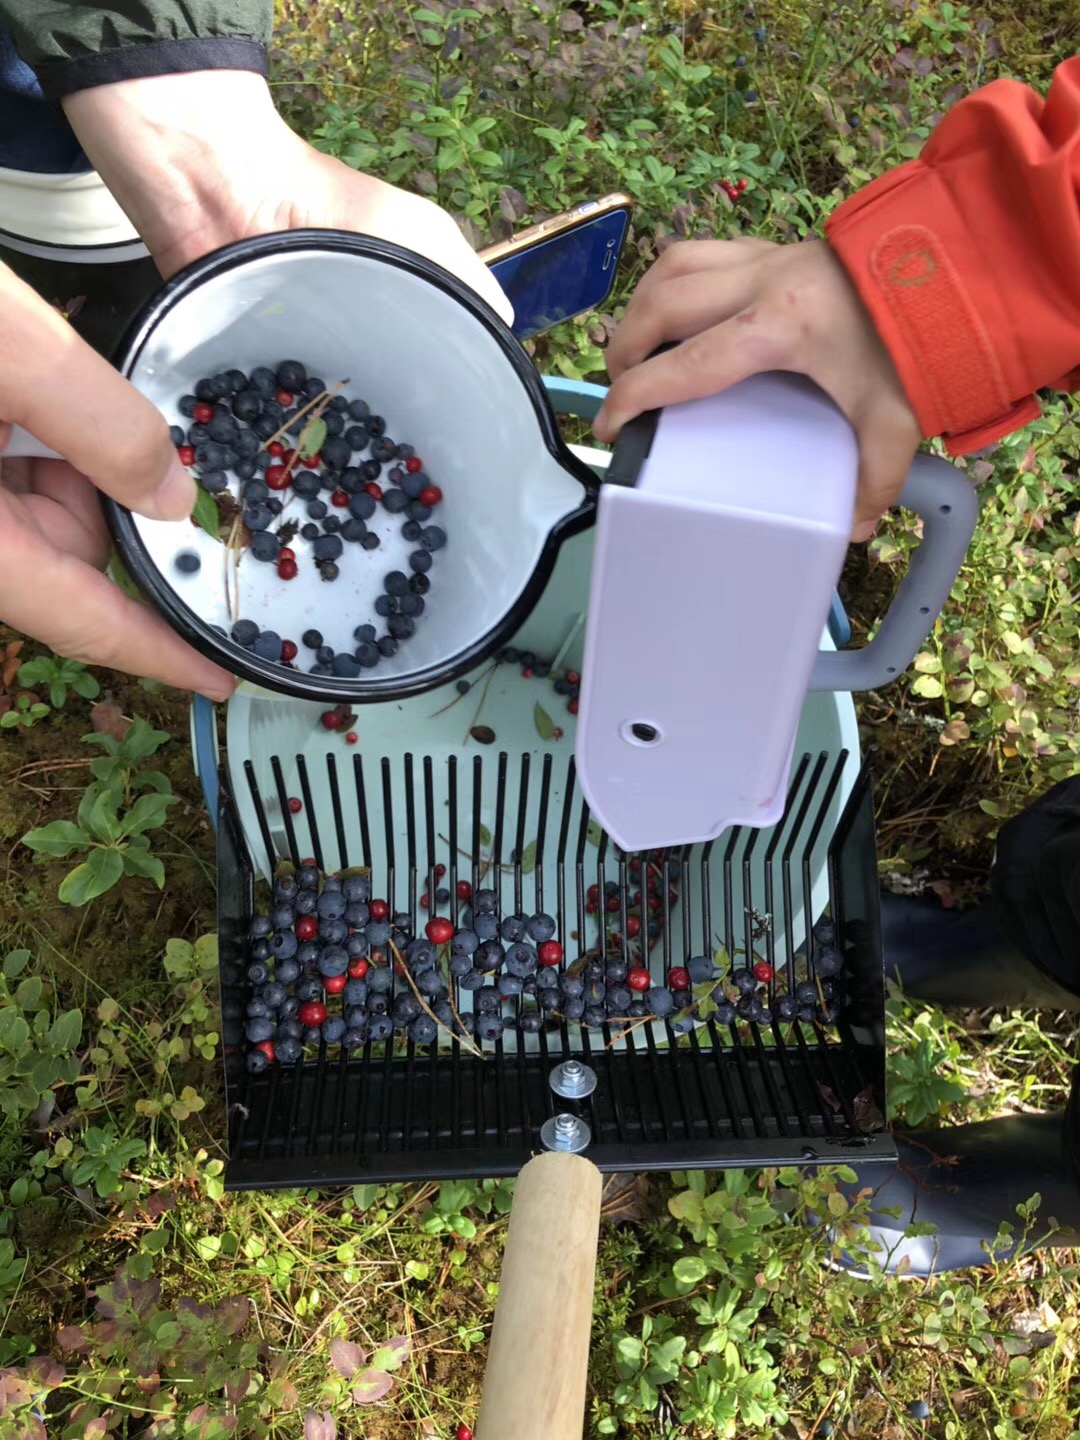 Private Country Home Visit with Berry Picking in Tervakoski from Helsinki, 5 hours